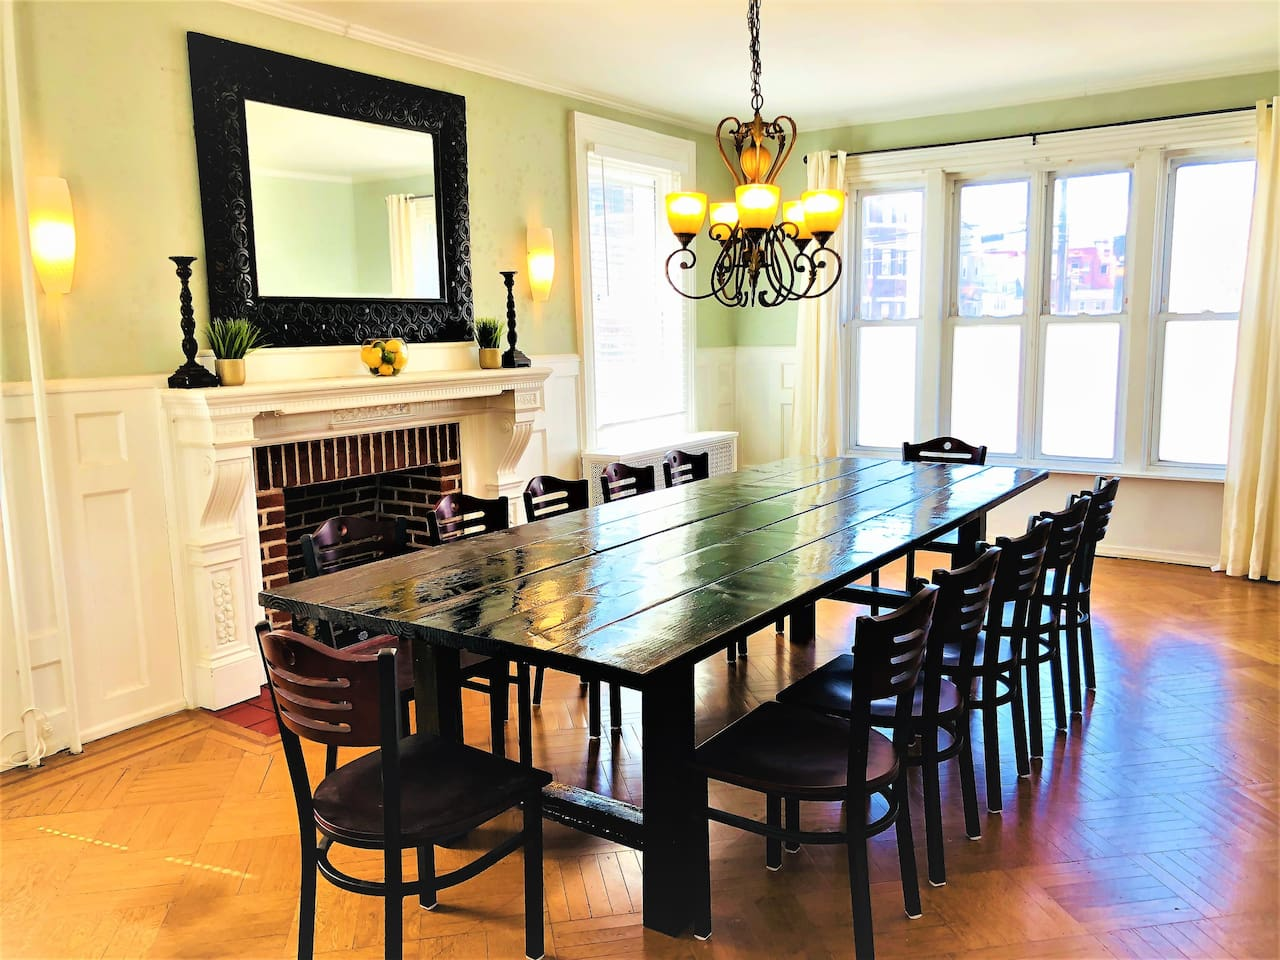 """Relax and gather at the dining table with seating for 14!  Oh yes, and there's a 50"""" flat screen in this room if you want to watch a sporting event or other program while you're gathered together.  And it's a Smart TV!"""